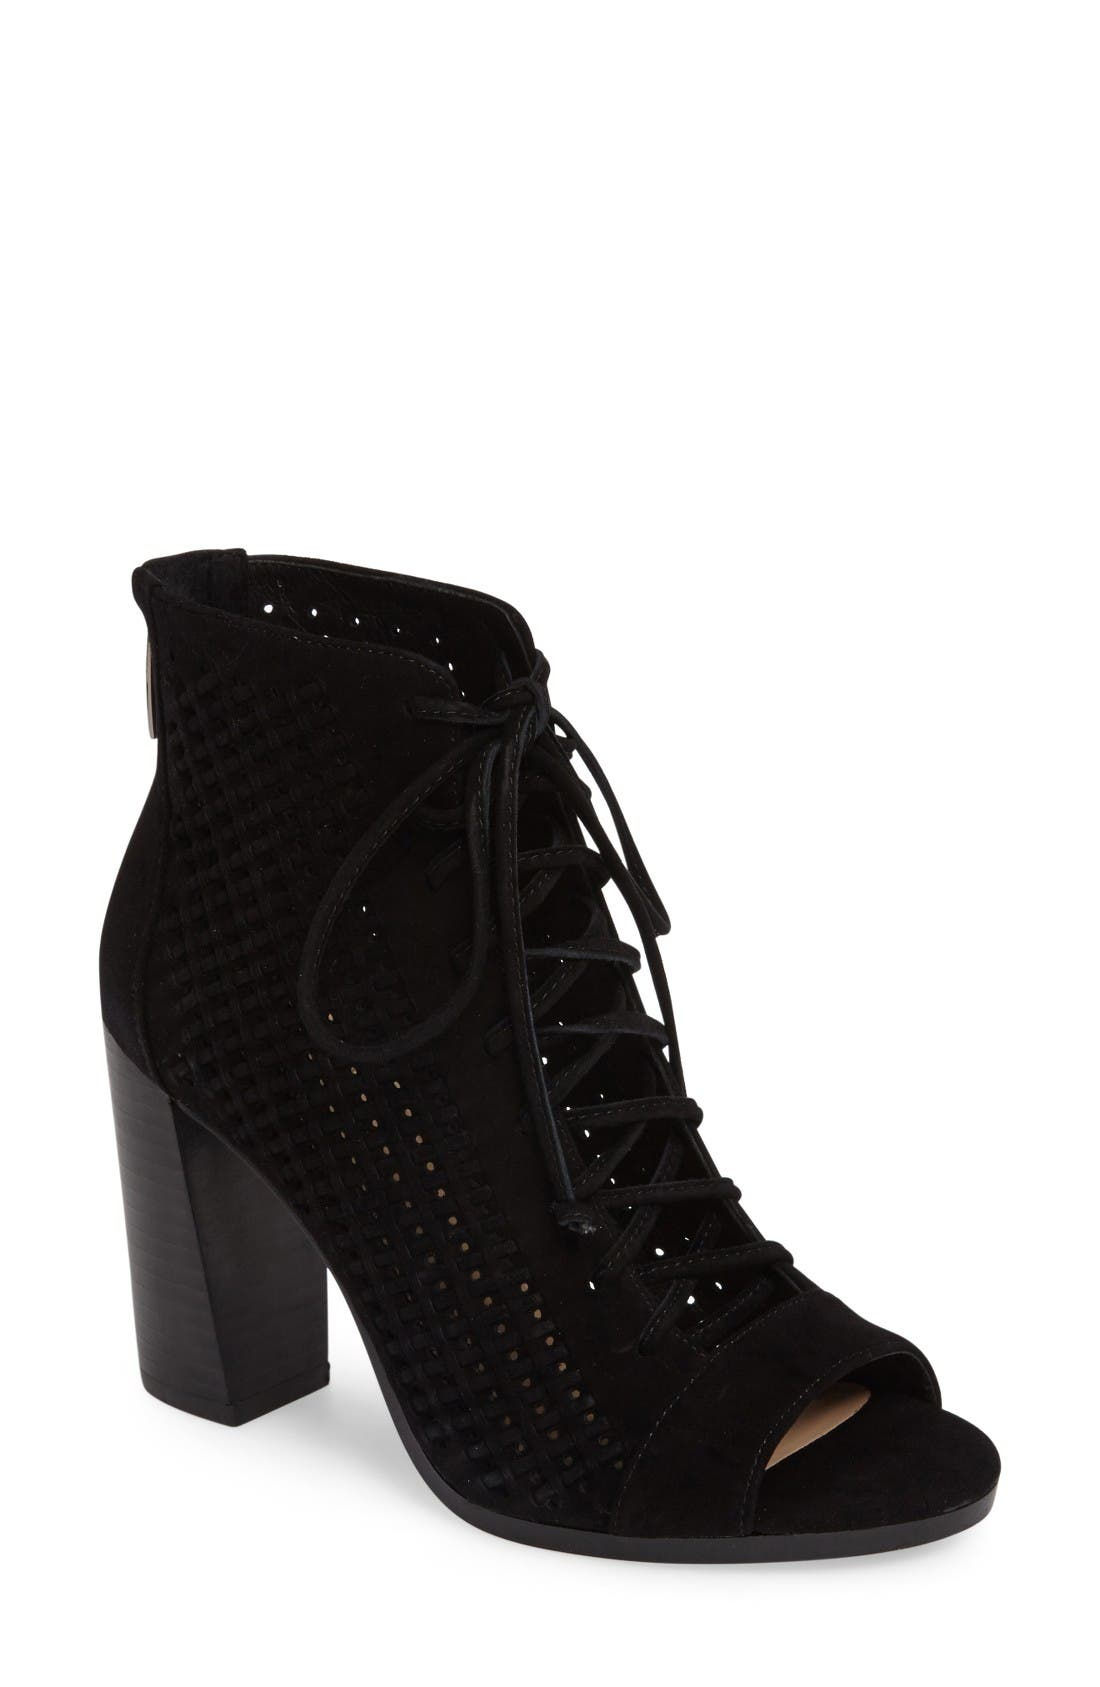 Alternate Image 1 Selected - Vince Camuto Kevina Lace-Up Open Toe Bootie (Women)